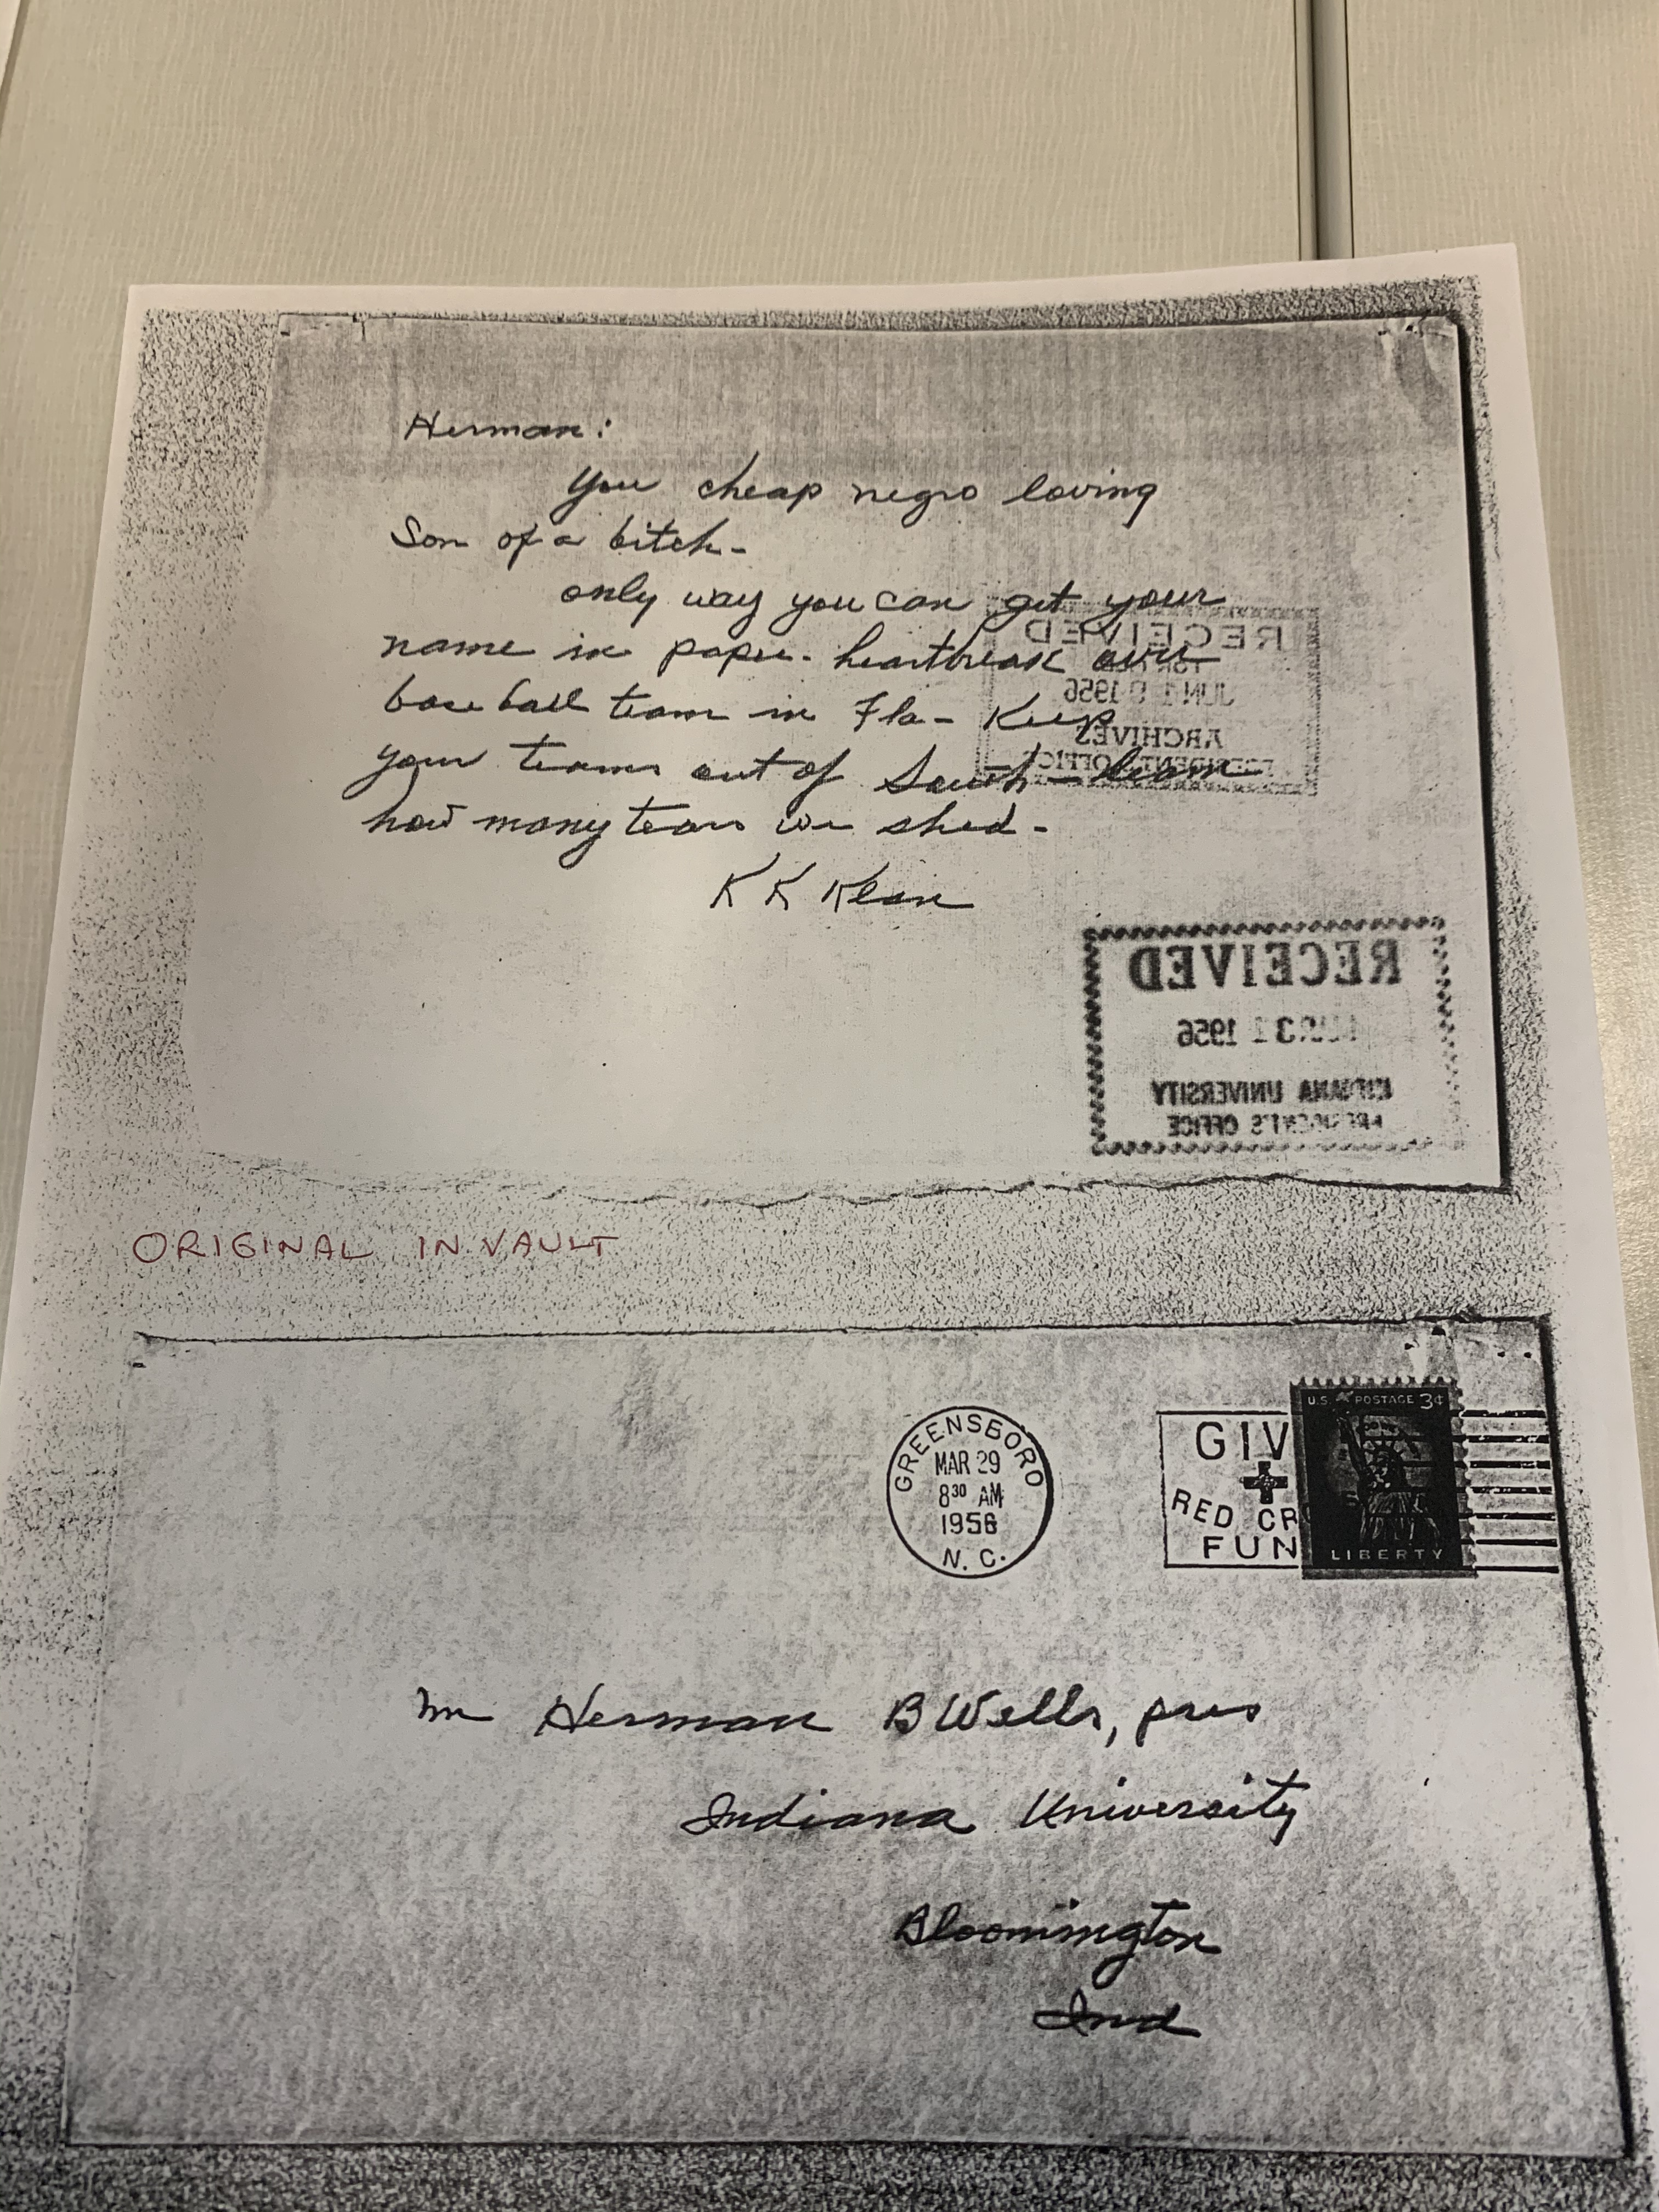 Racist letter sent to Herman B. Wells from the Ku Klux Klan. Despite receiving this, Wells did not back down in his support for Eddie Whitehead.